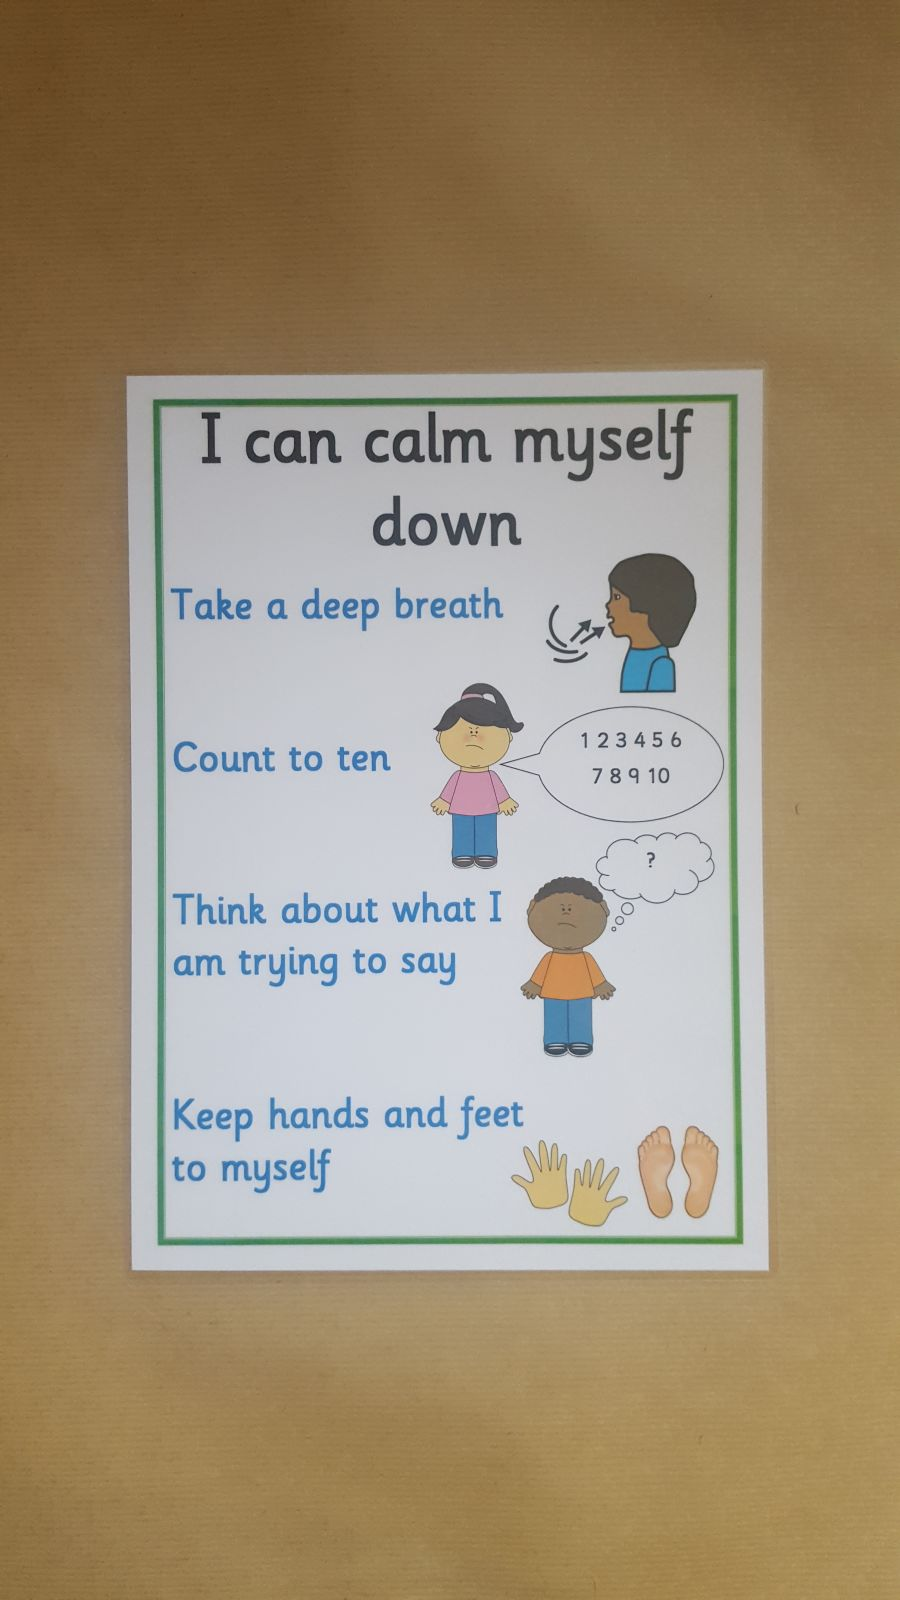 I can calm myself down - Poster